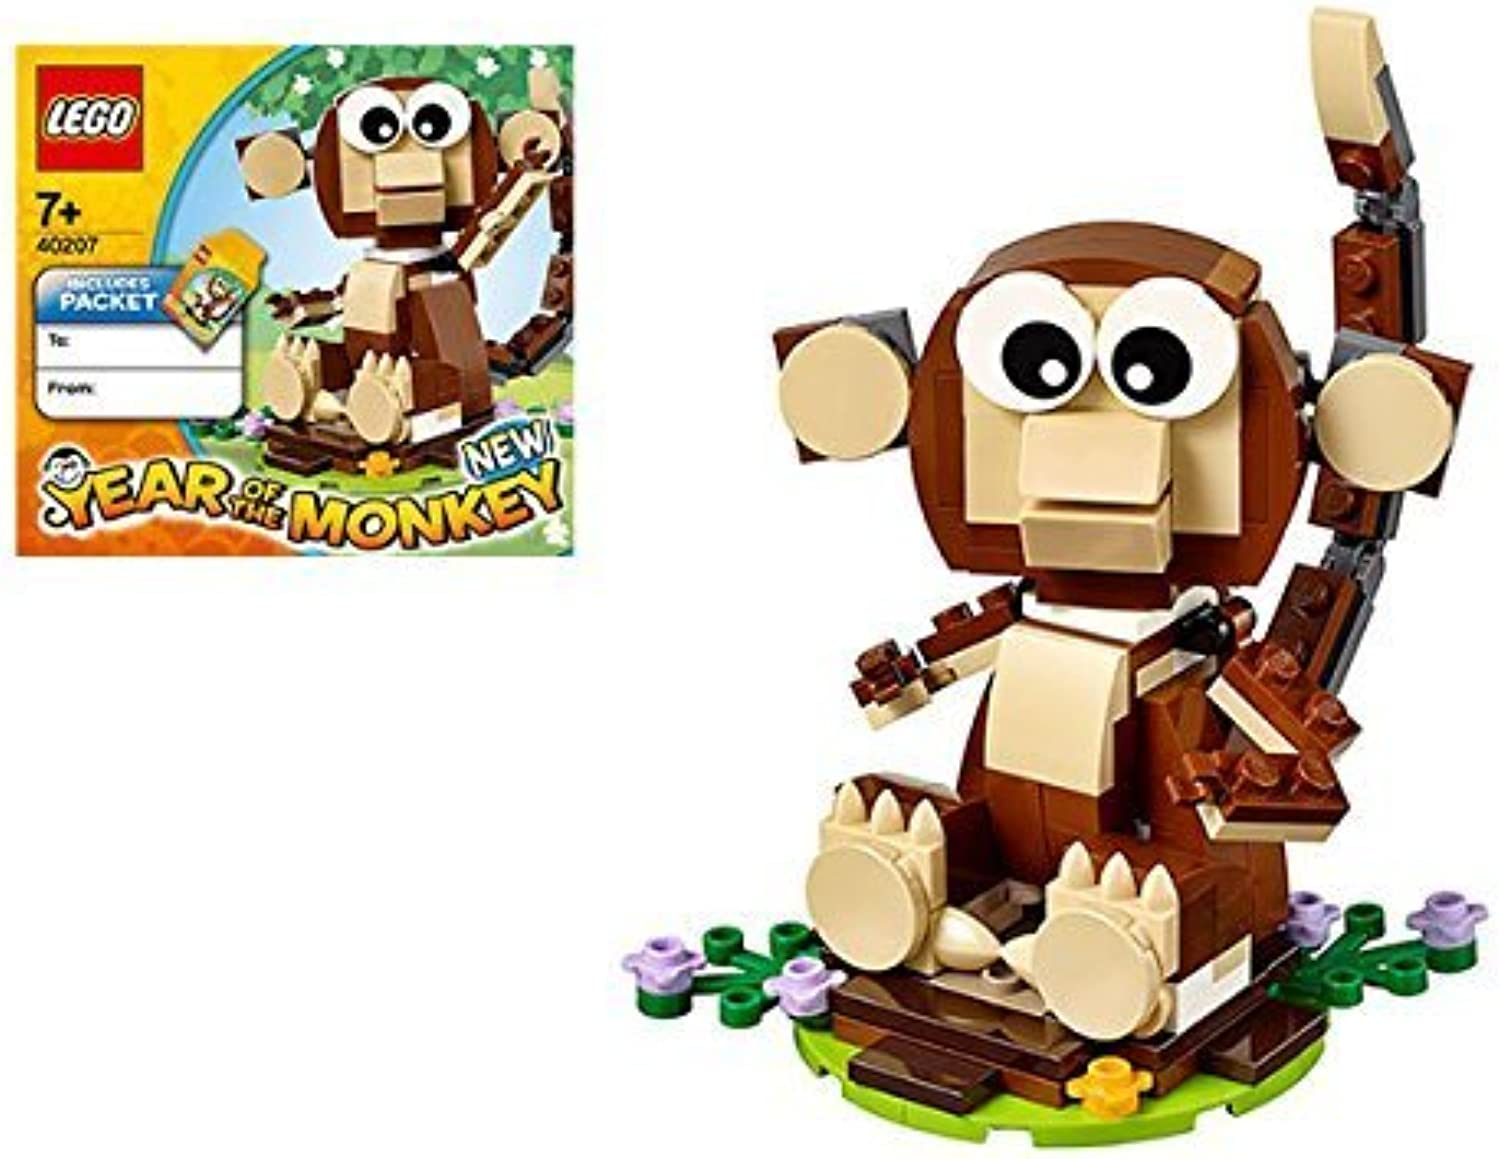 popular LEGO 40207 Year of the Monkey Monkey Monkey New Year Limited 2016 by LEGO  precio mas barato